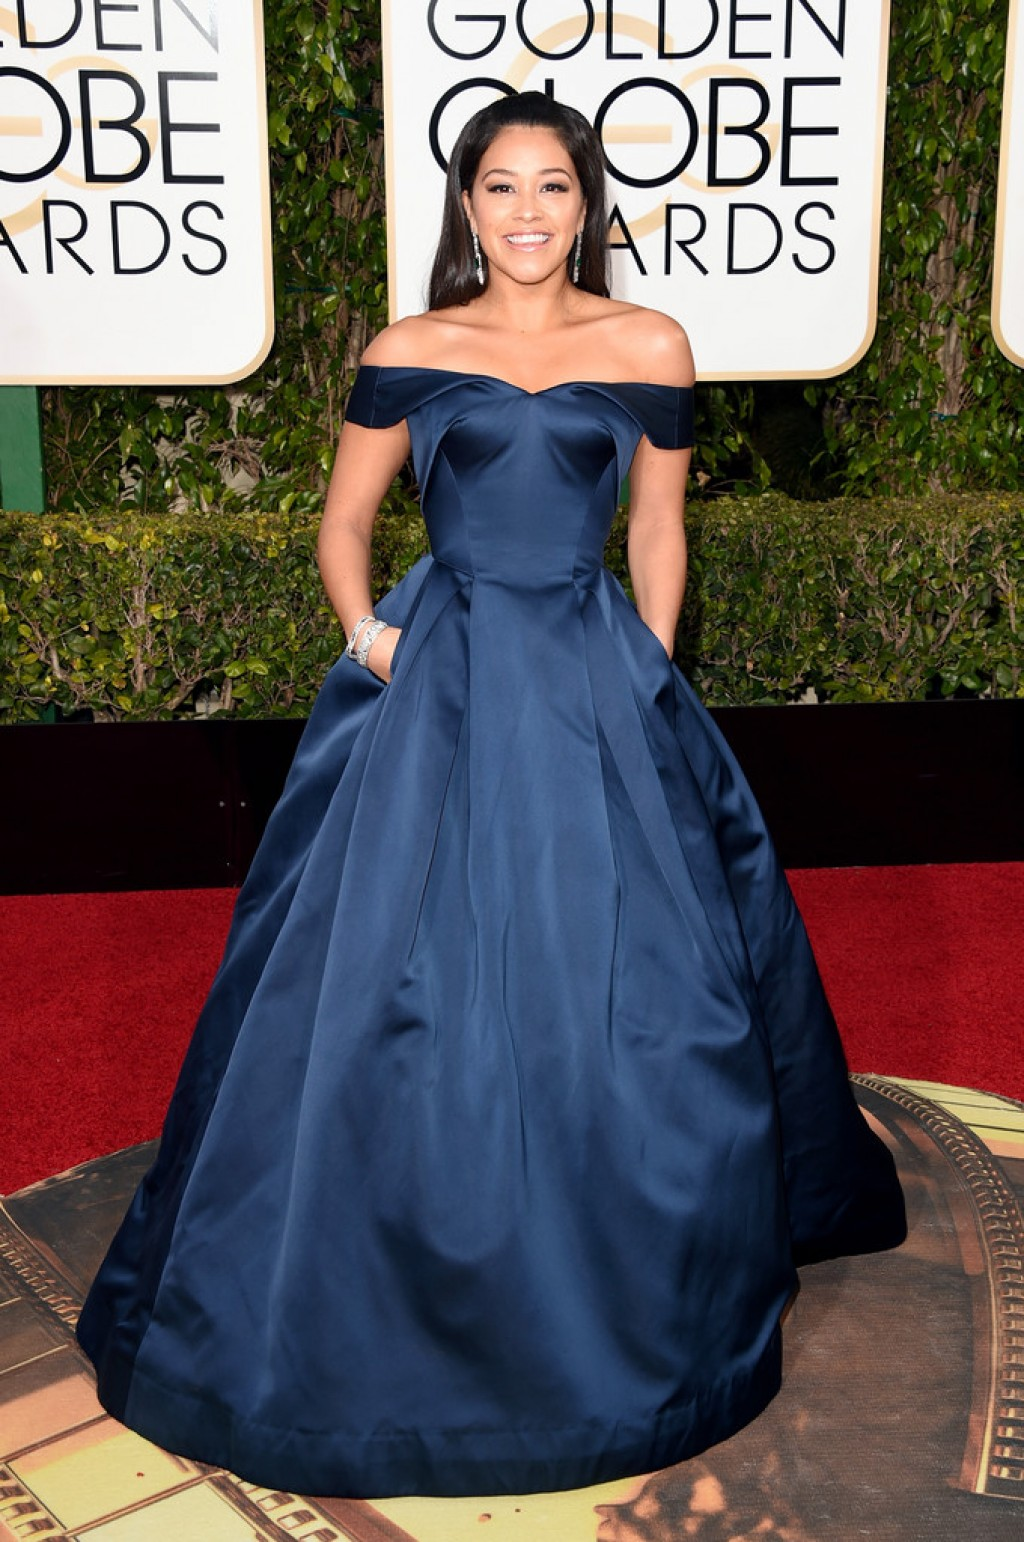 Gina-Rodriguez-in-Zac-Posen-2016-Golden-Globe-Awards-1024x1542